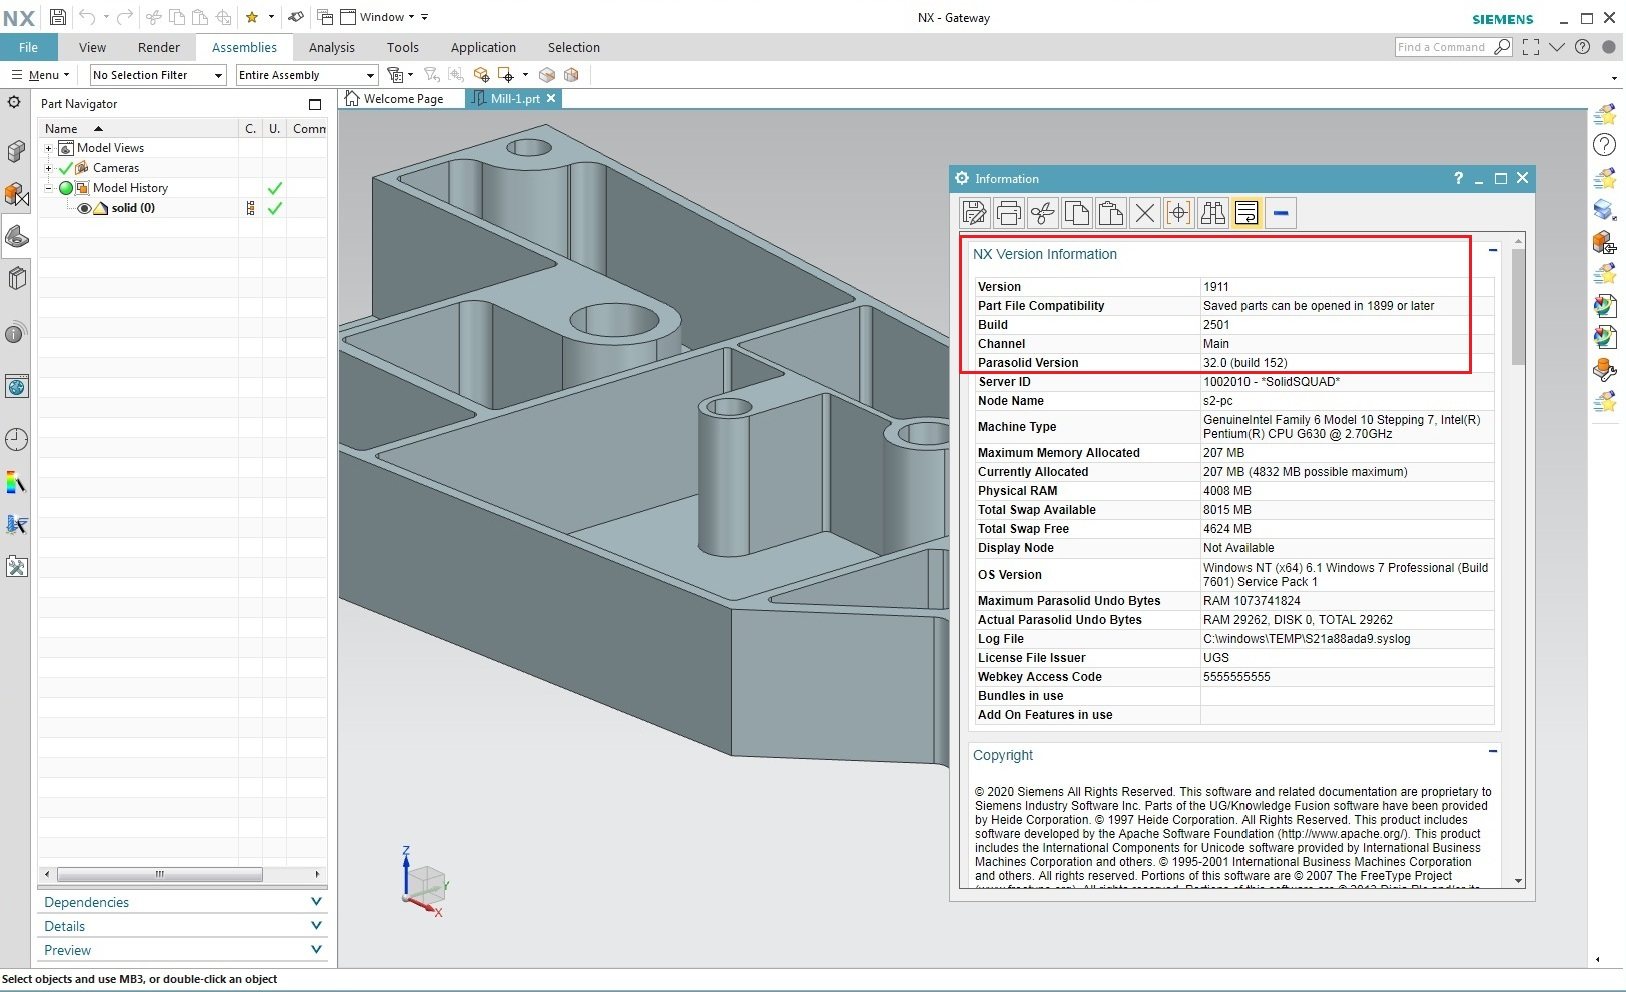 Working with Siemens NX 1911 Build 2501 full license